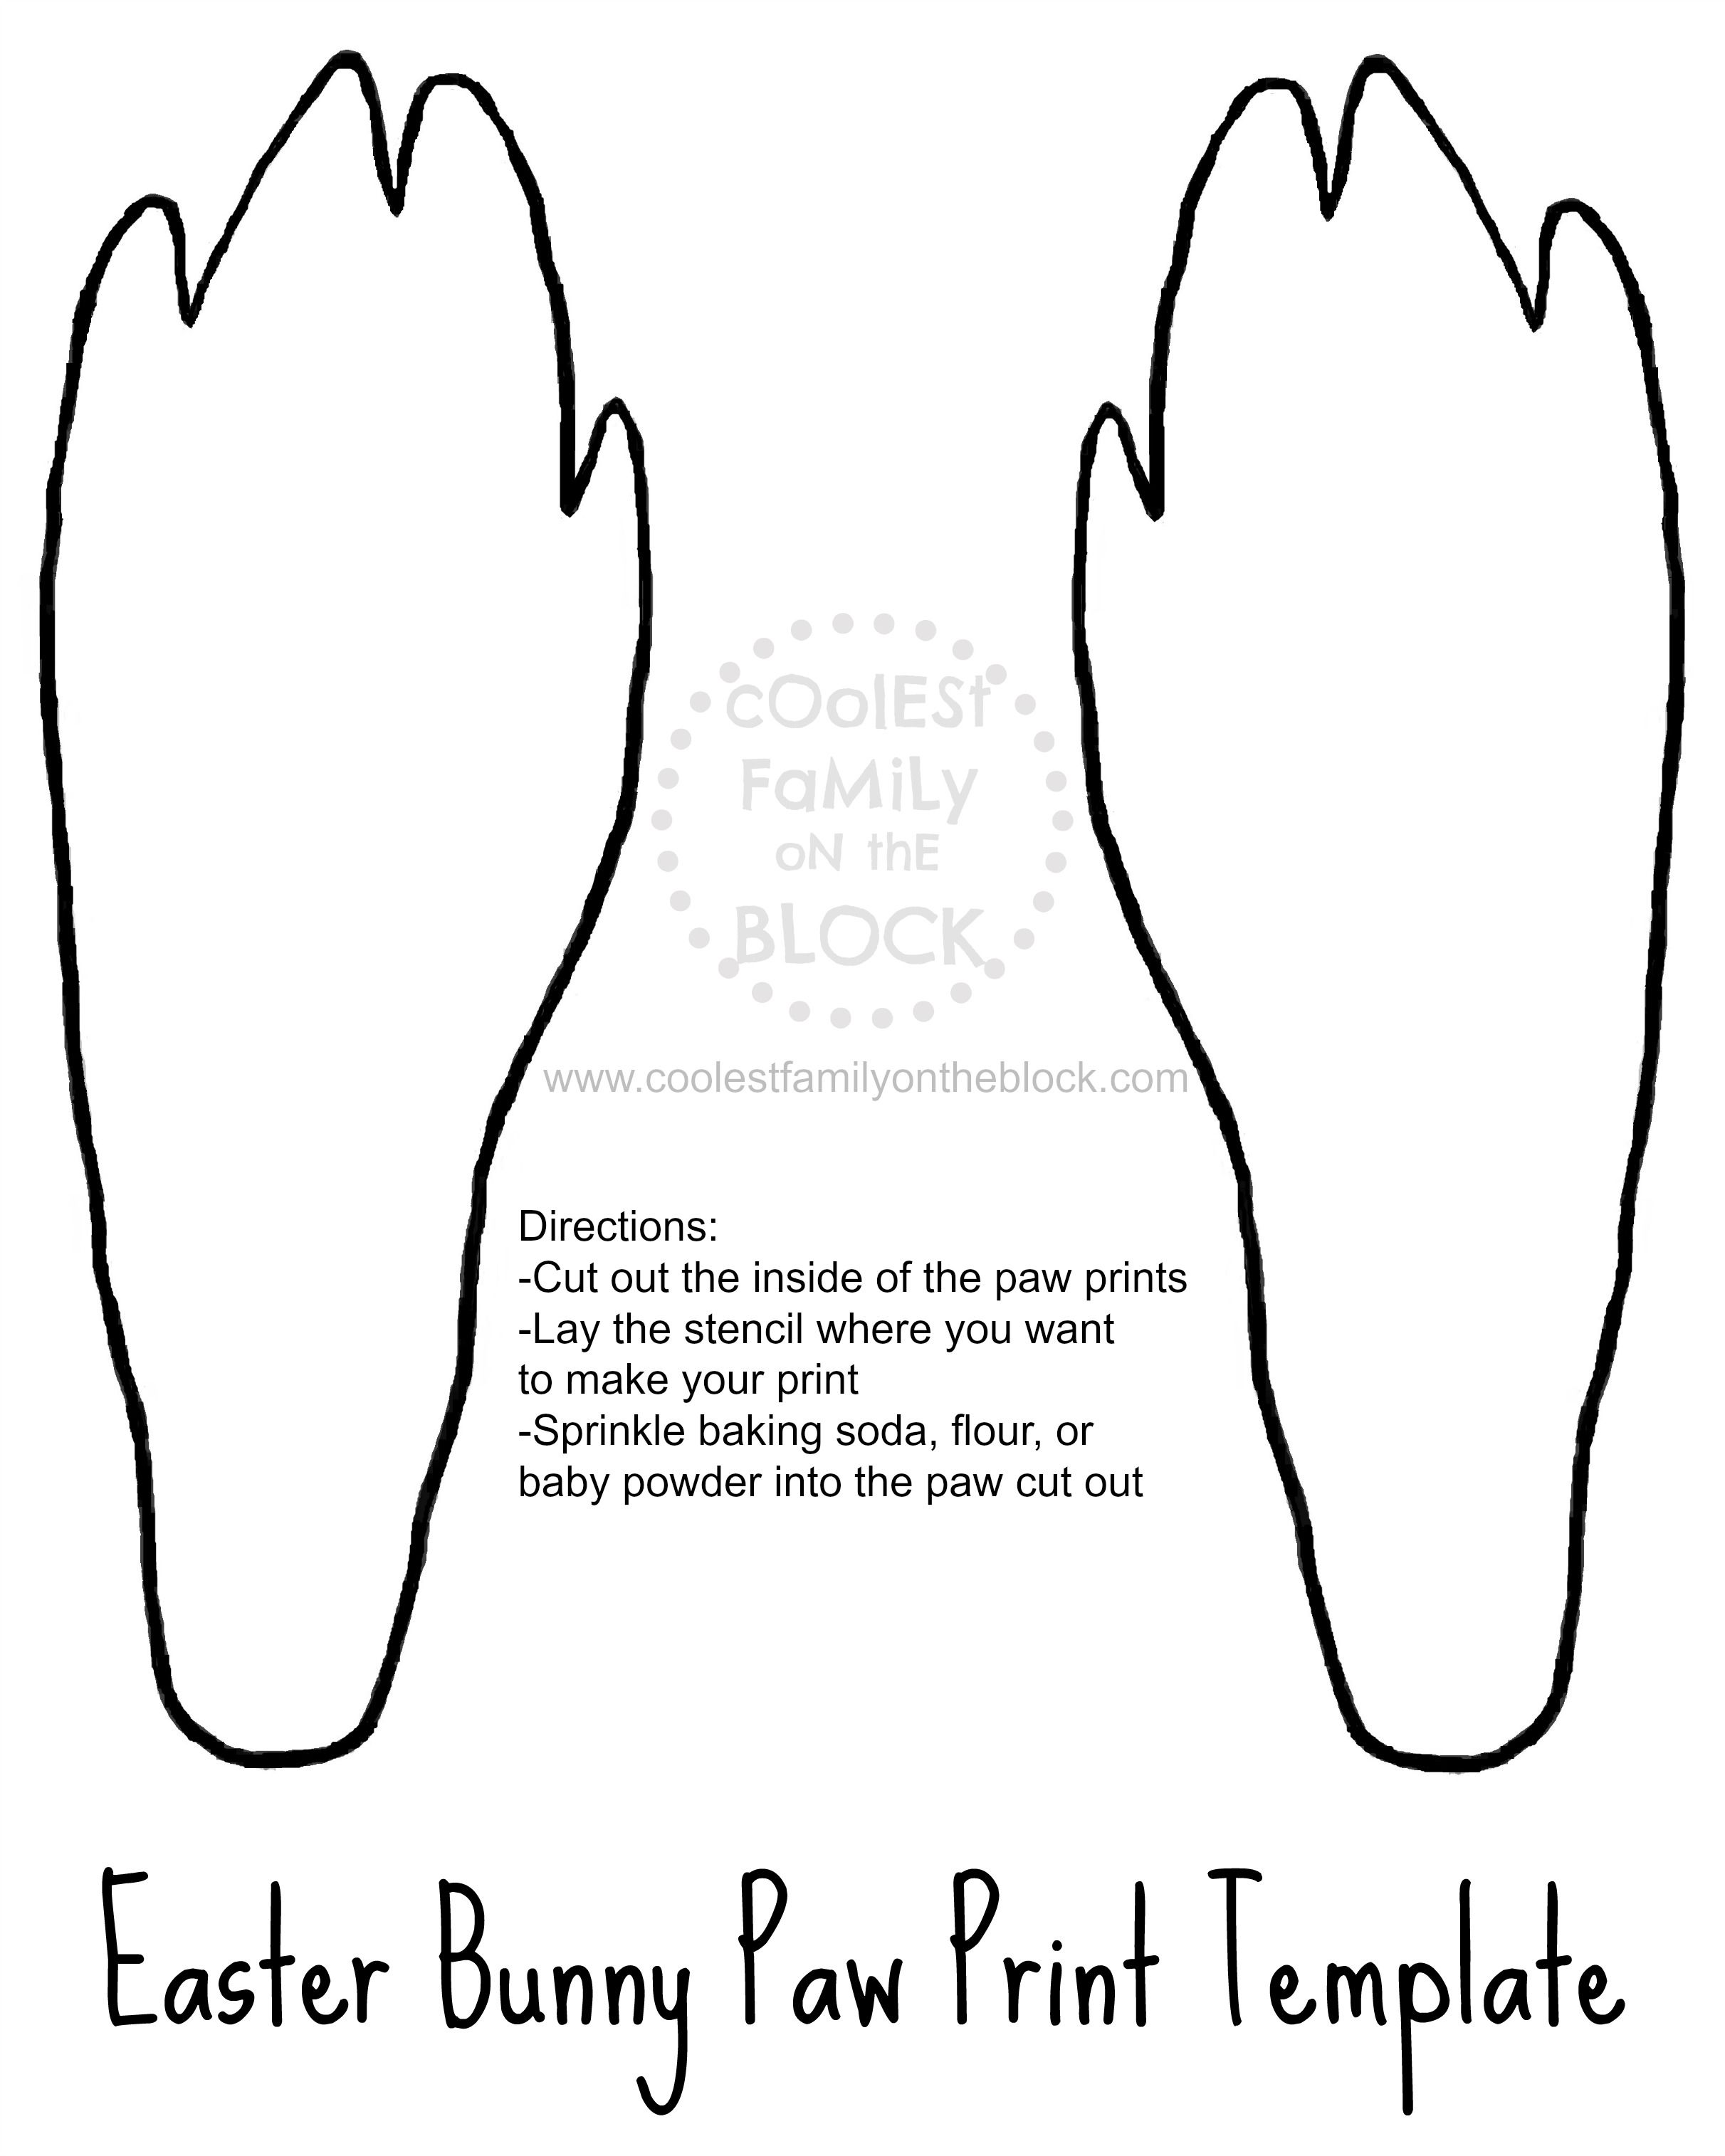 Free Printable Easter Bunny Paw Prints Template Back Paws Stencil Footprint Trail Tracks